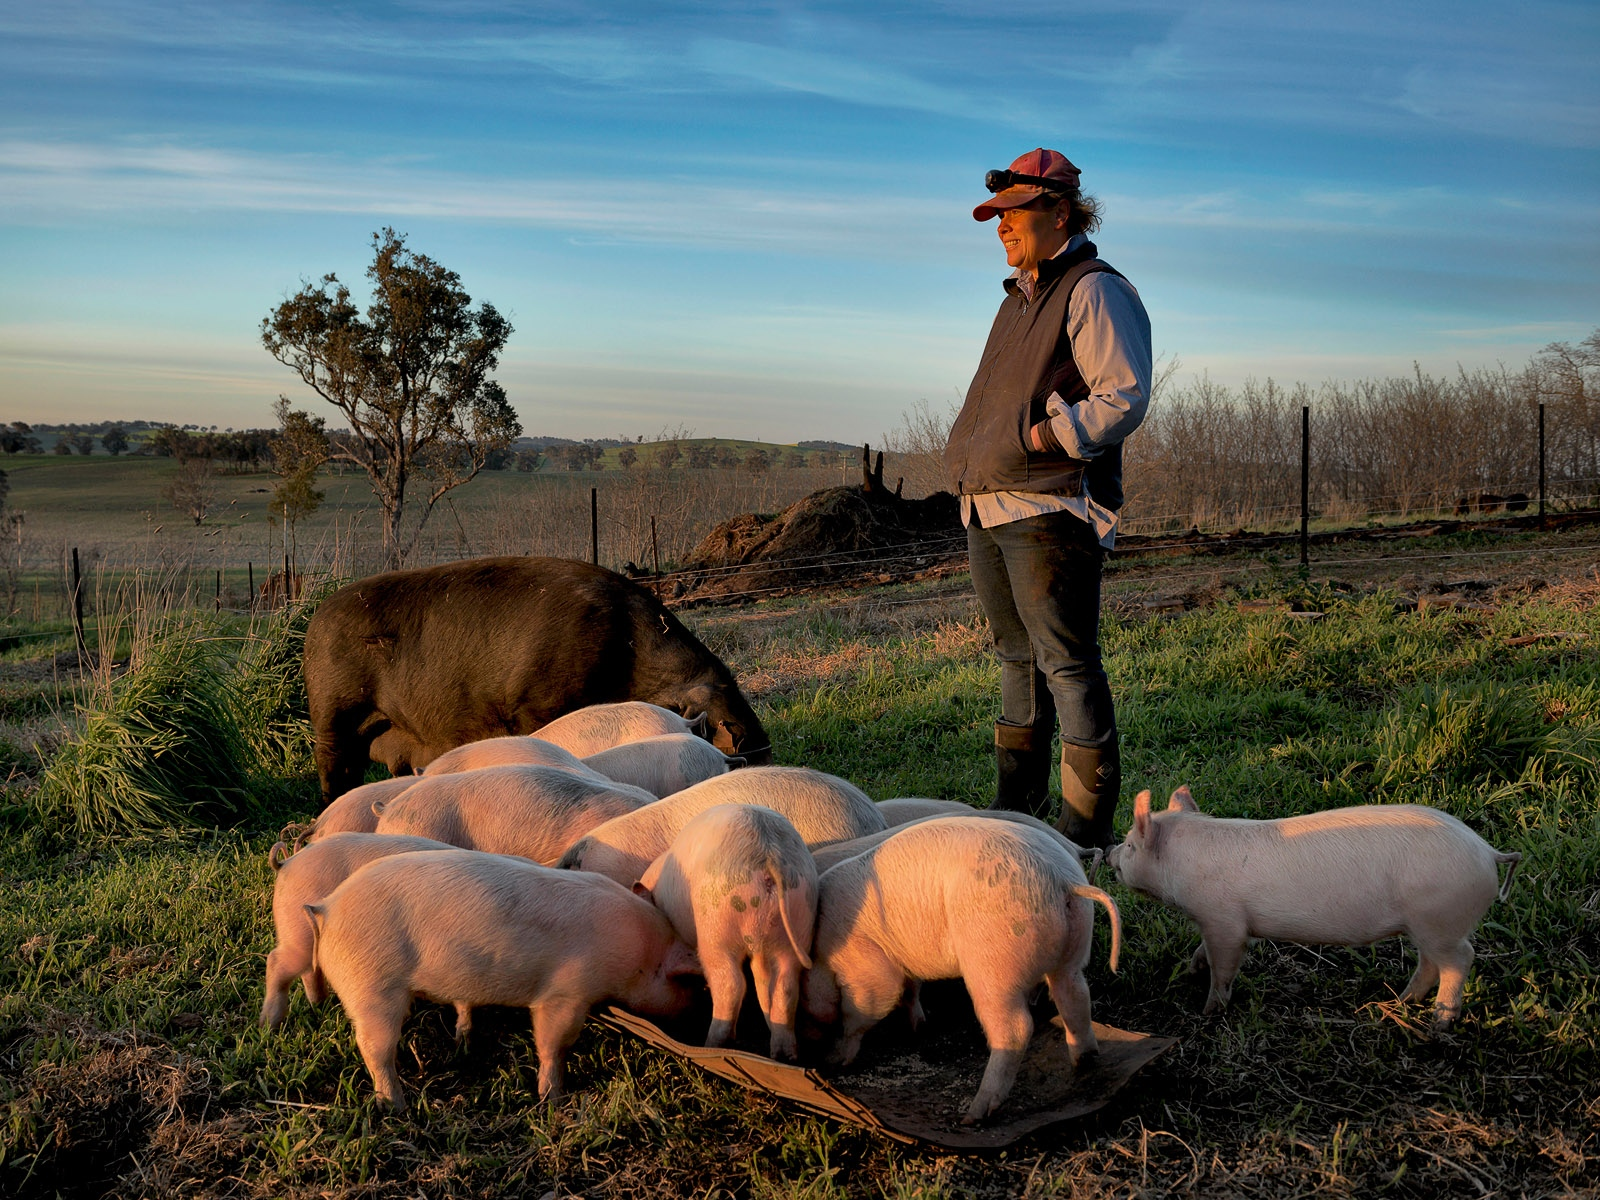 Ali Betts, 'Muddy Pigs' farmer